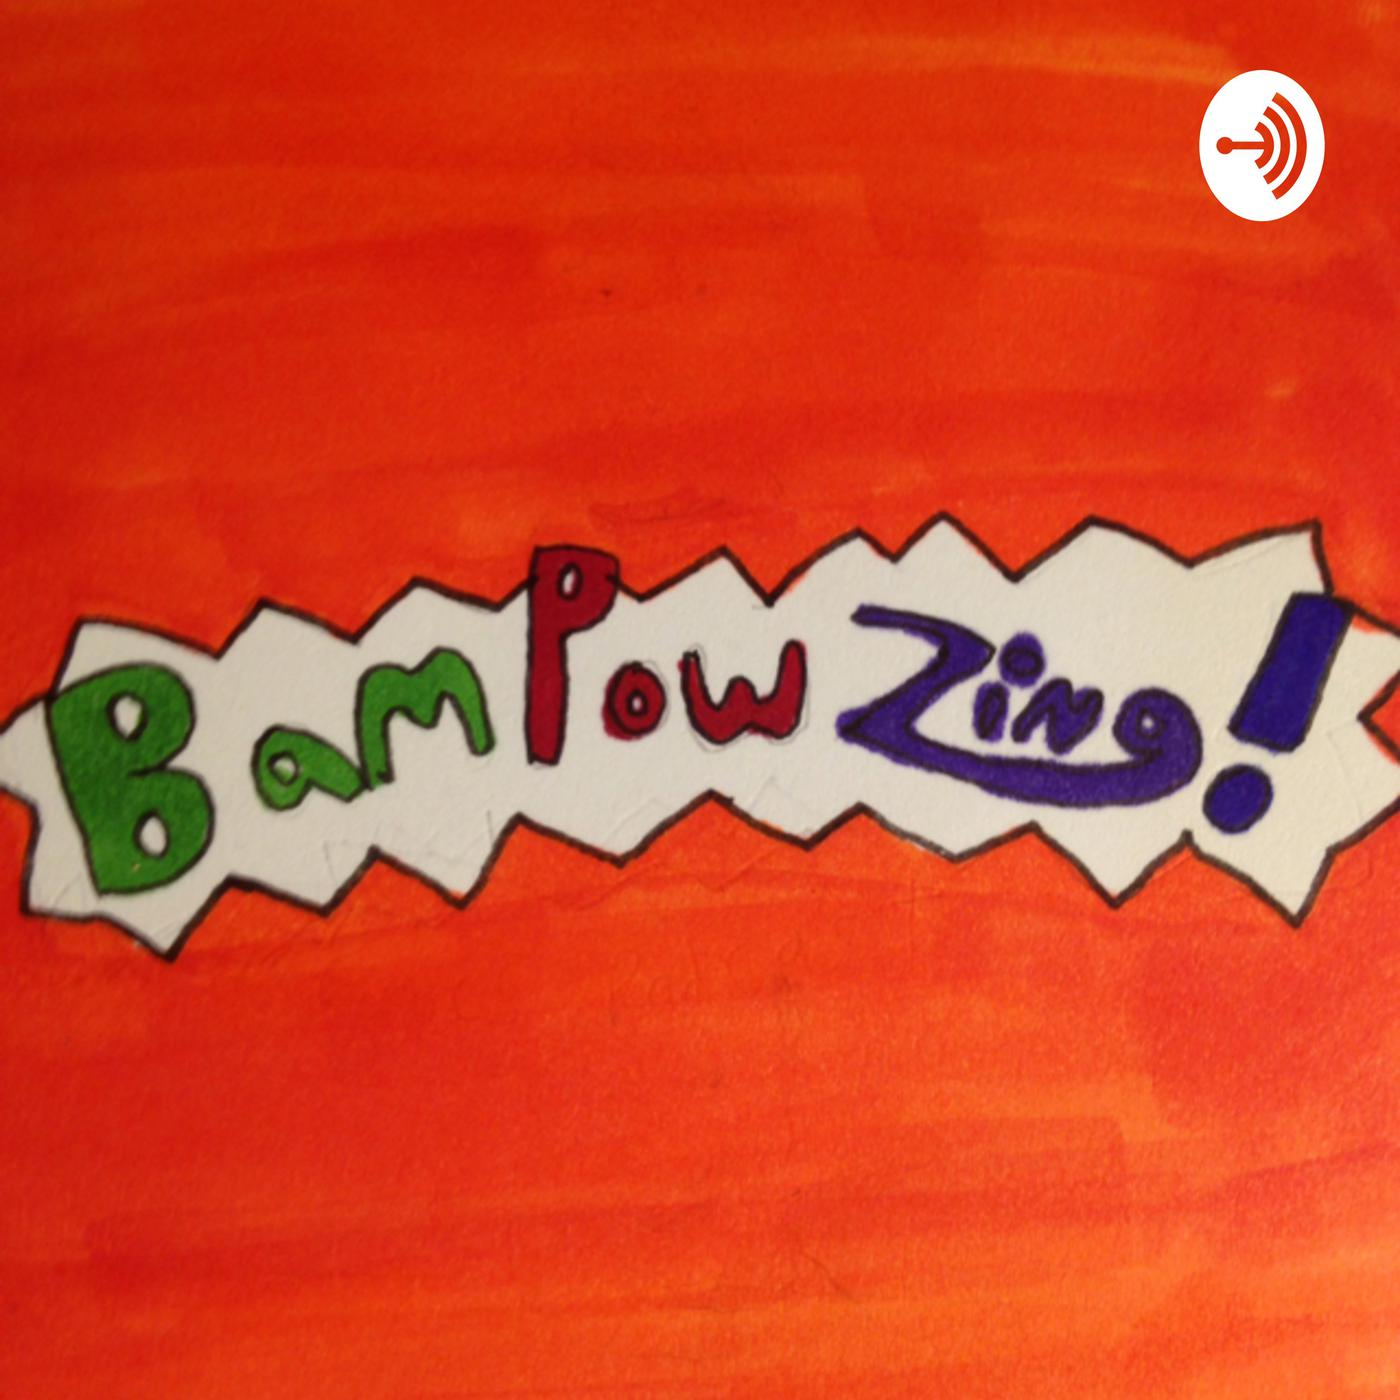 BamPowZing! (A Comics Podcast) - The Pow!cast | Listen Notes